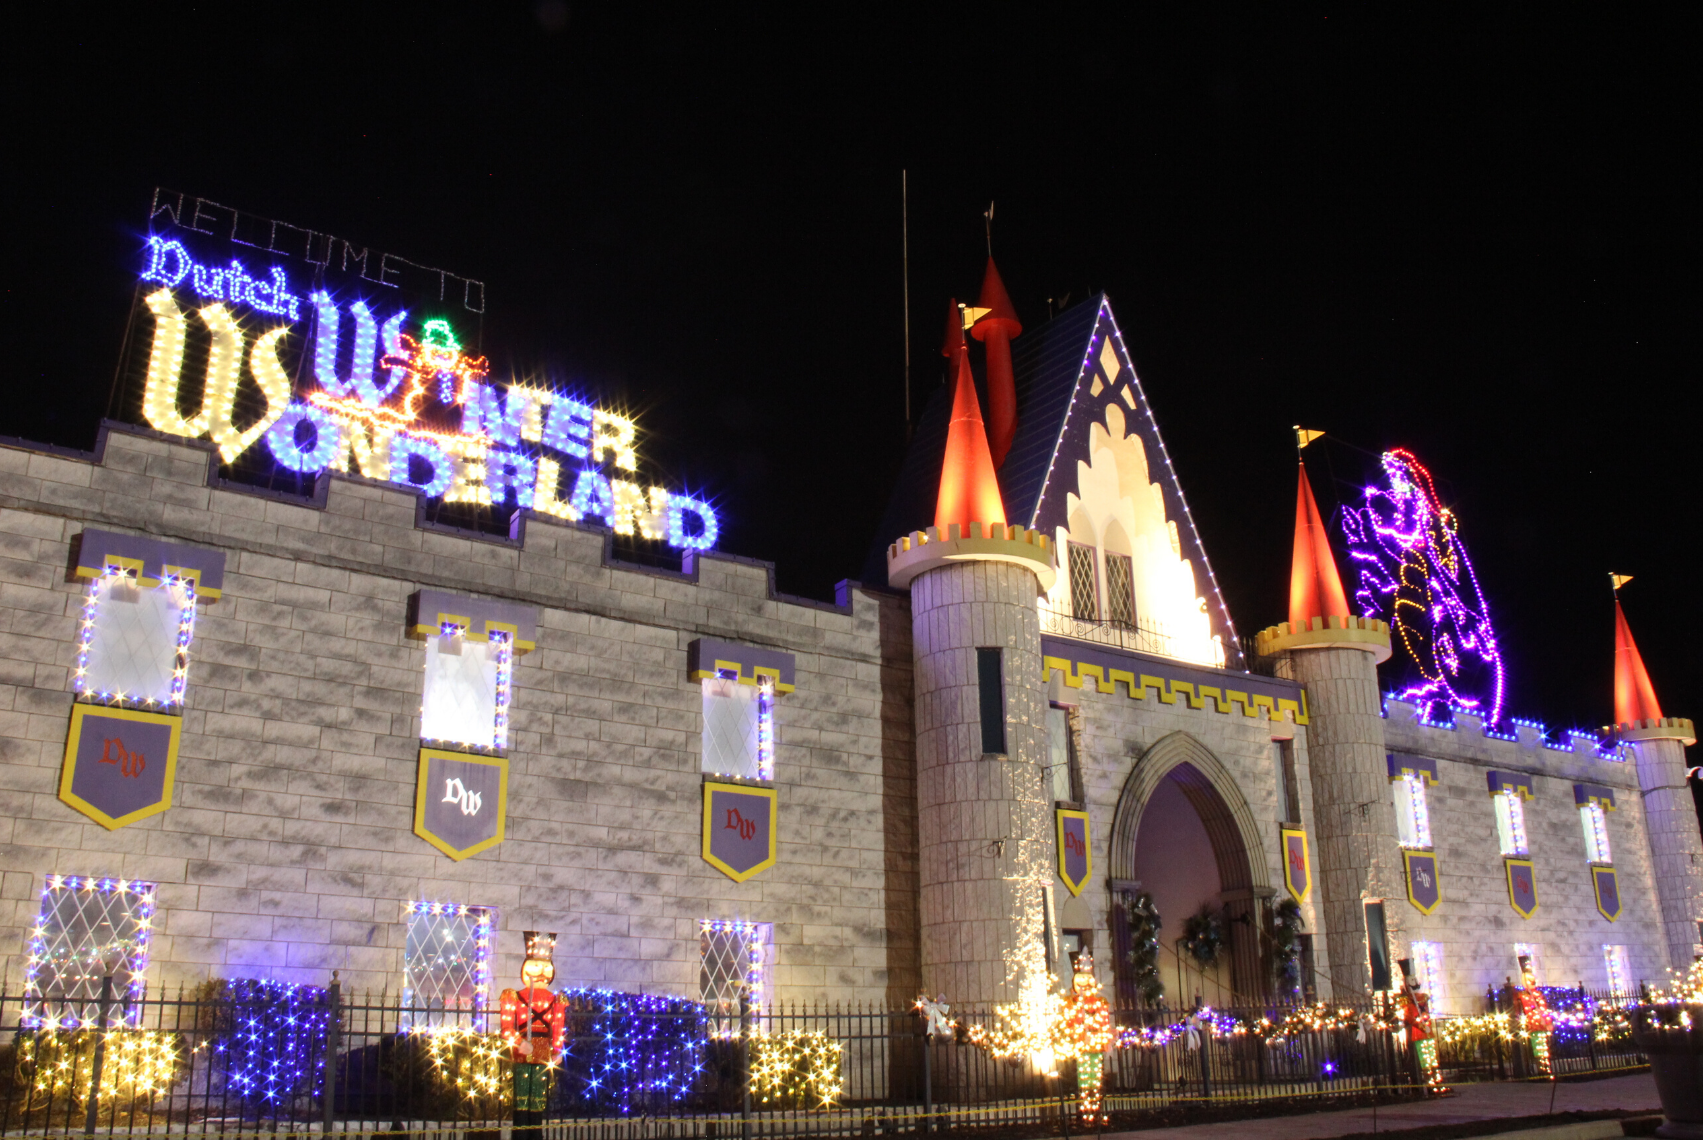 Dutch Wonderland Castle covered in lights